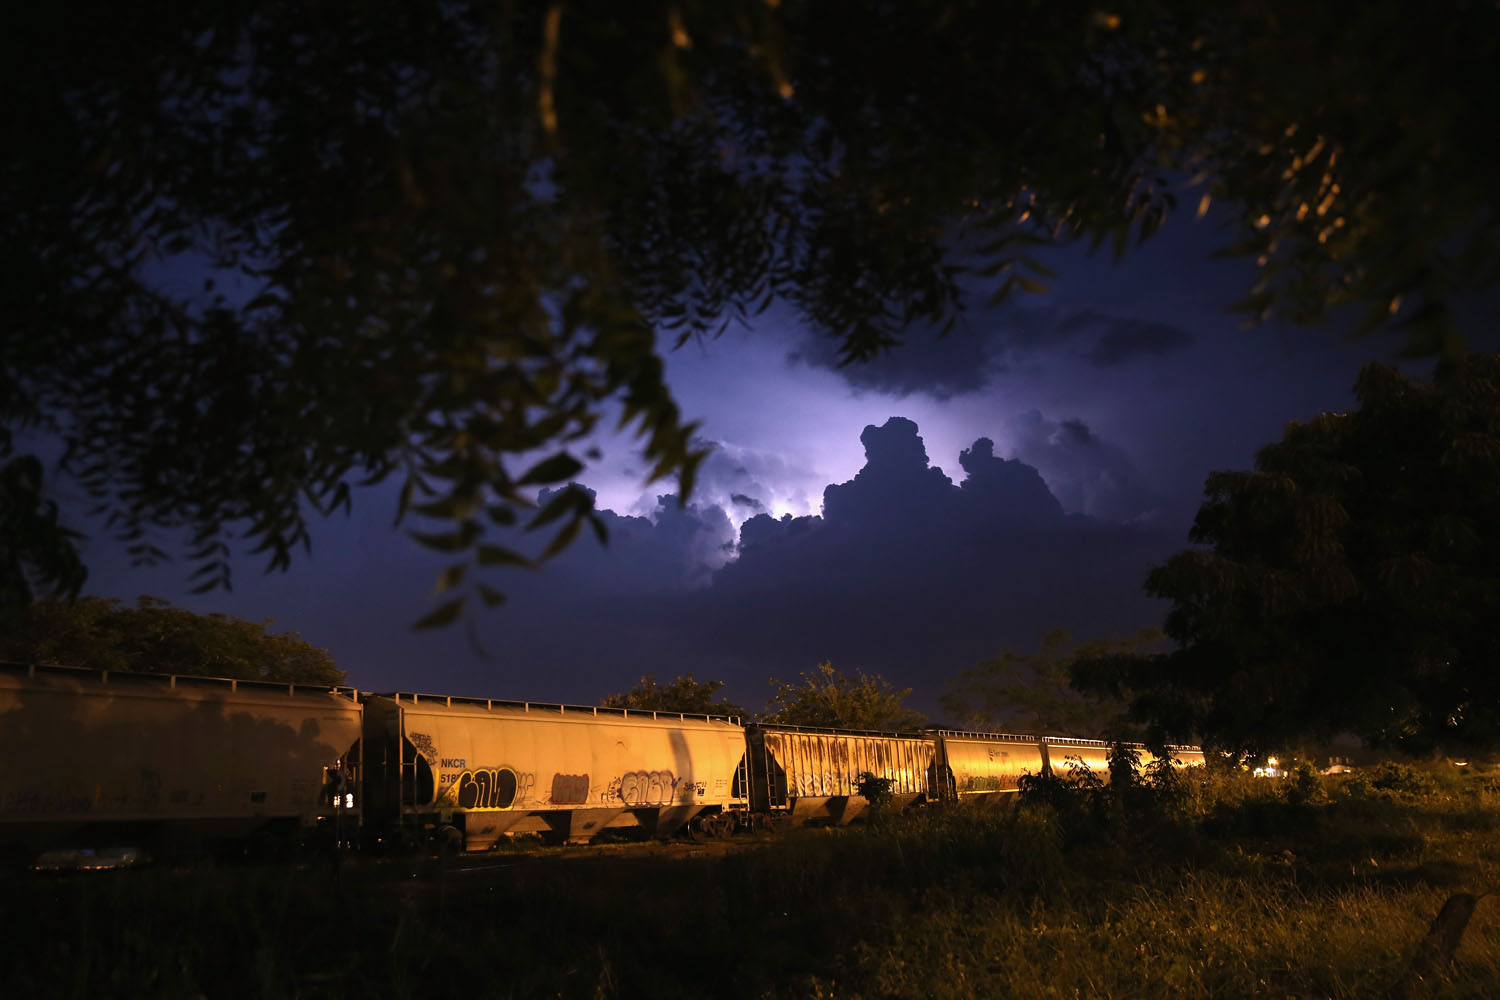 Aug. 3, 2013. Lightning flashes across the sky as a freight train known as  la bestia,  prepares to depart in Arriaga, Mexico.